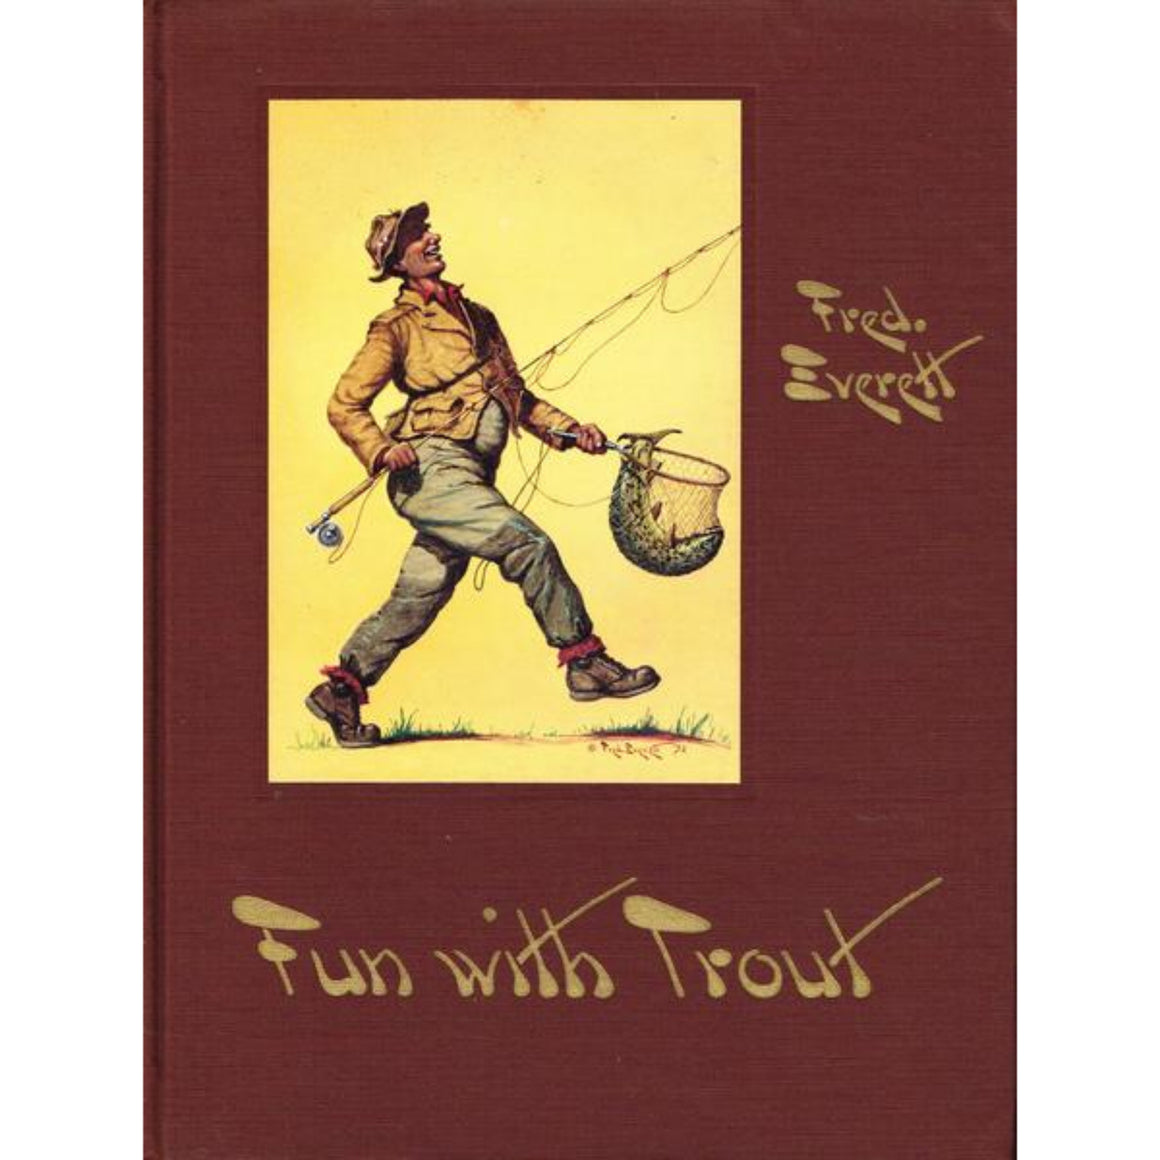 'Fun with Trout' by Fred Everett